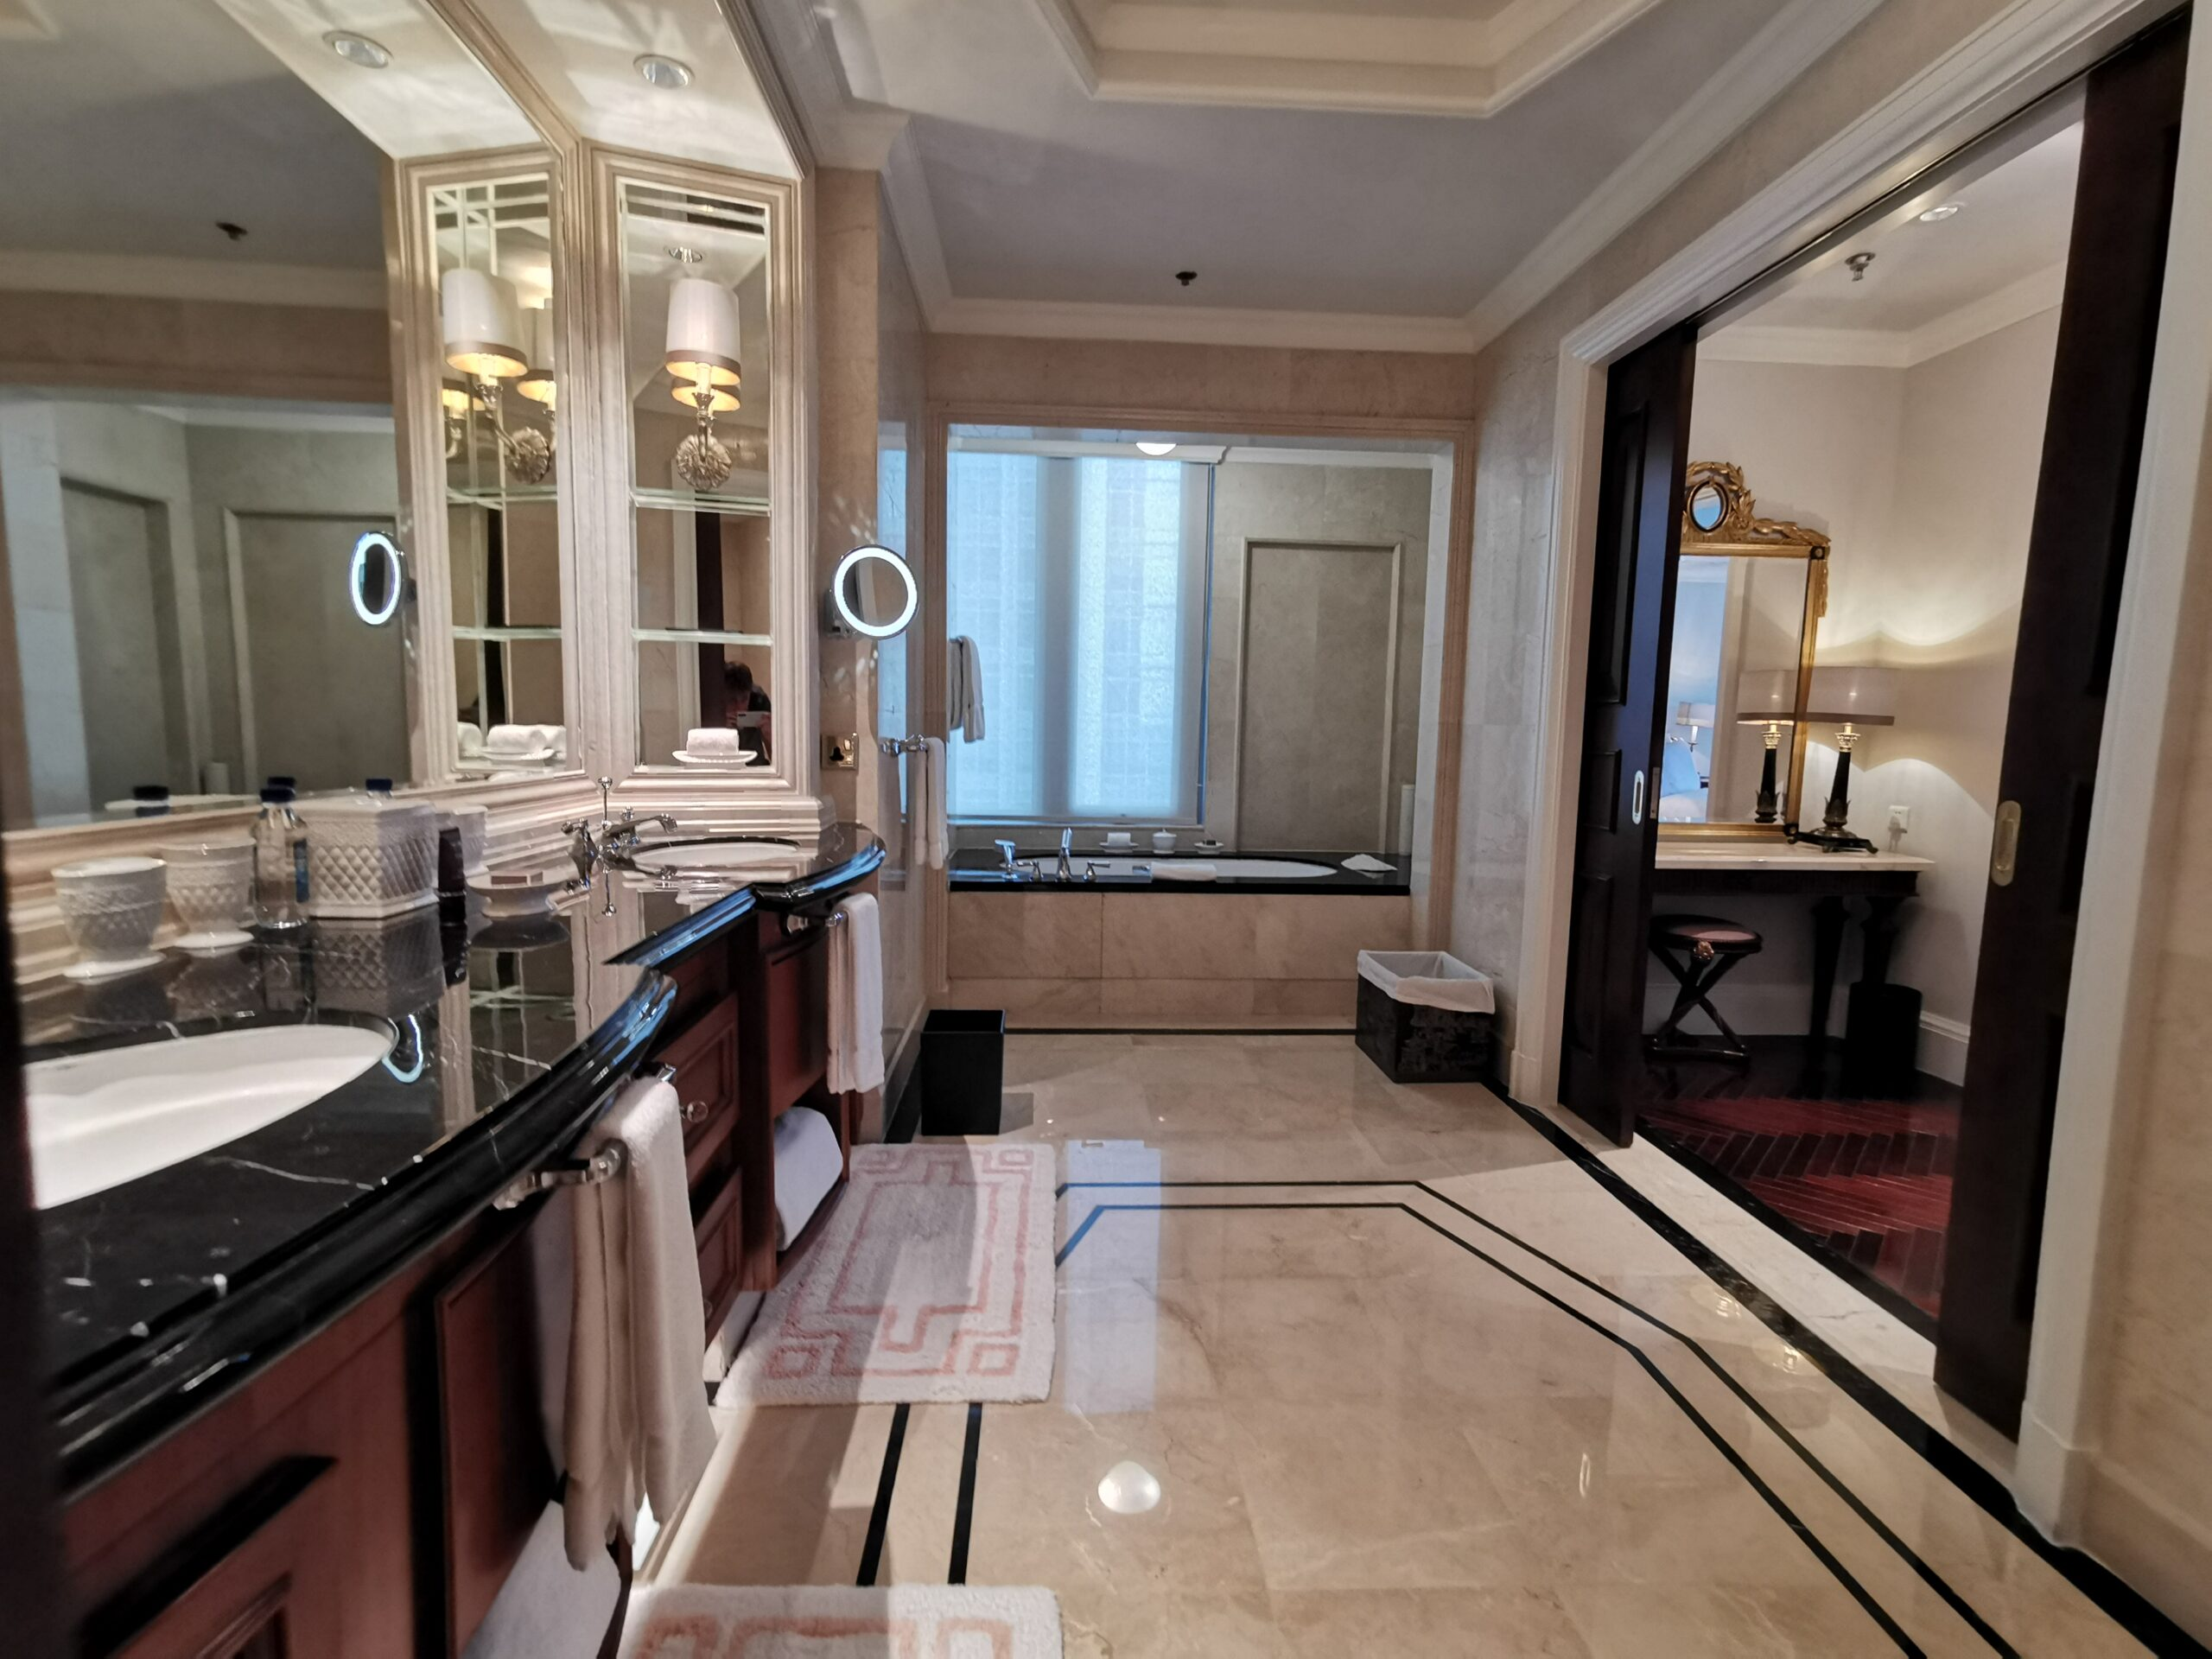 Ritz Carlton Guangzhou Suite Bathroom